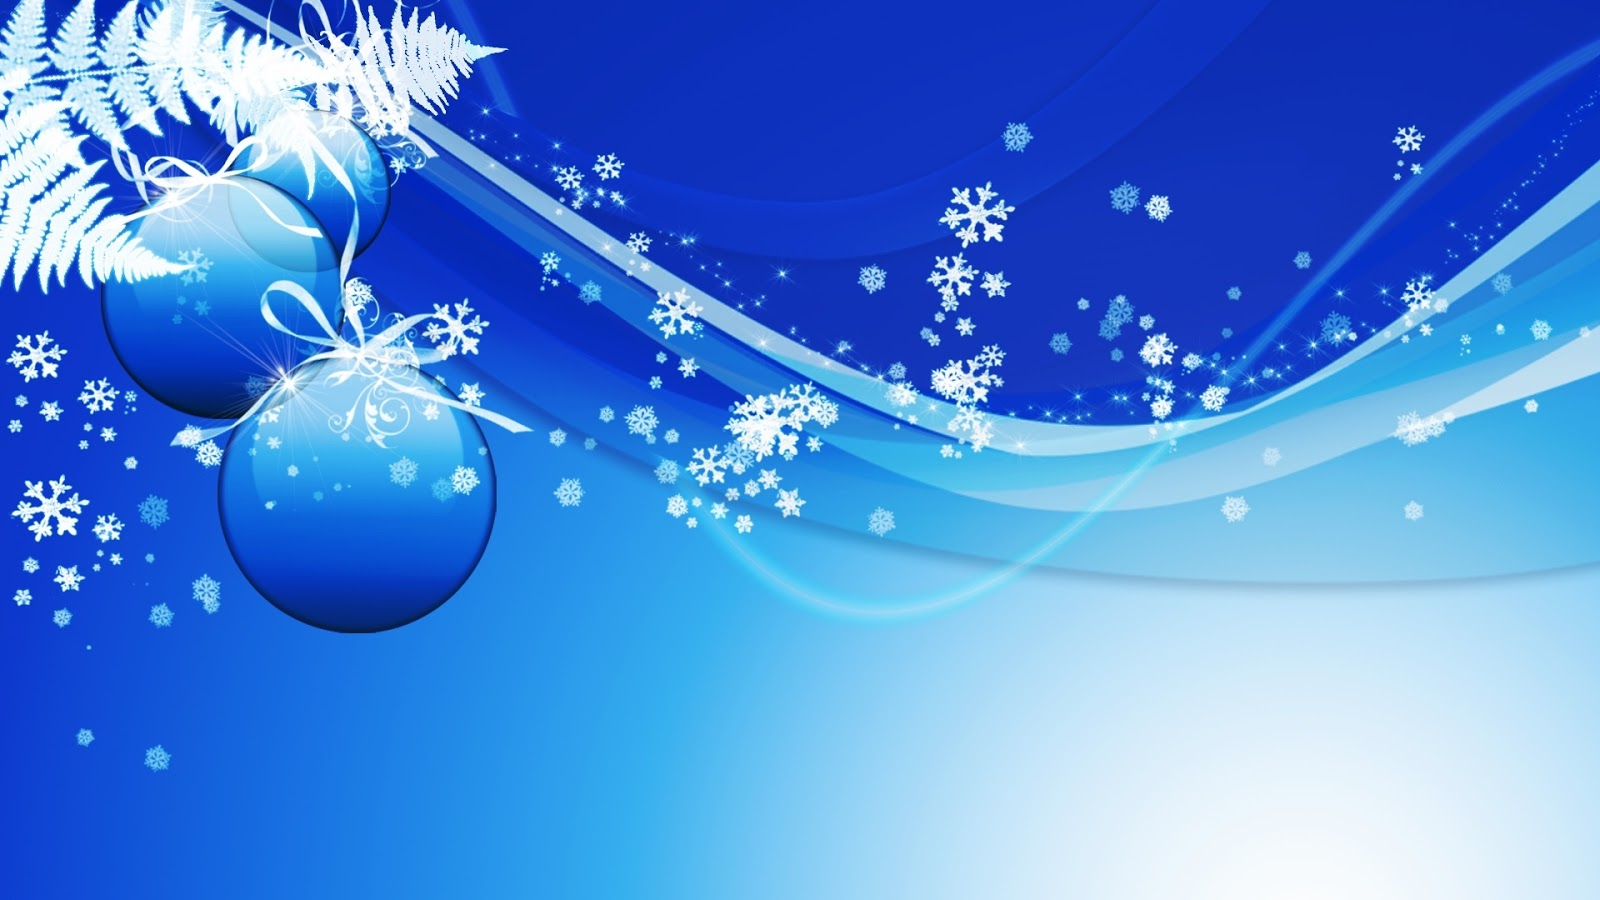 high definition wallpapers 1920x1080 christmas - photo #7